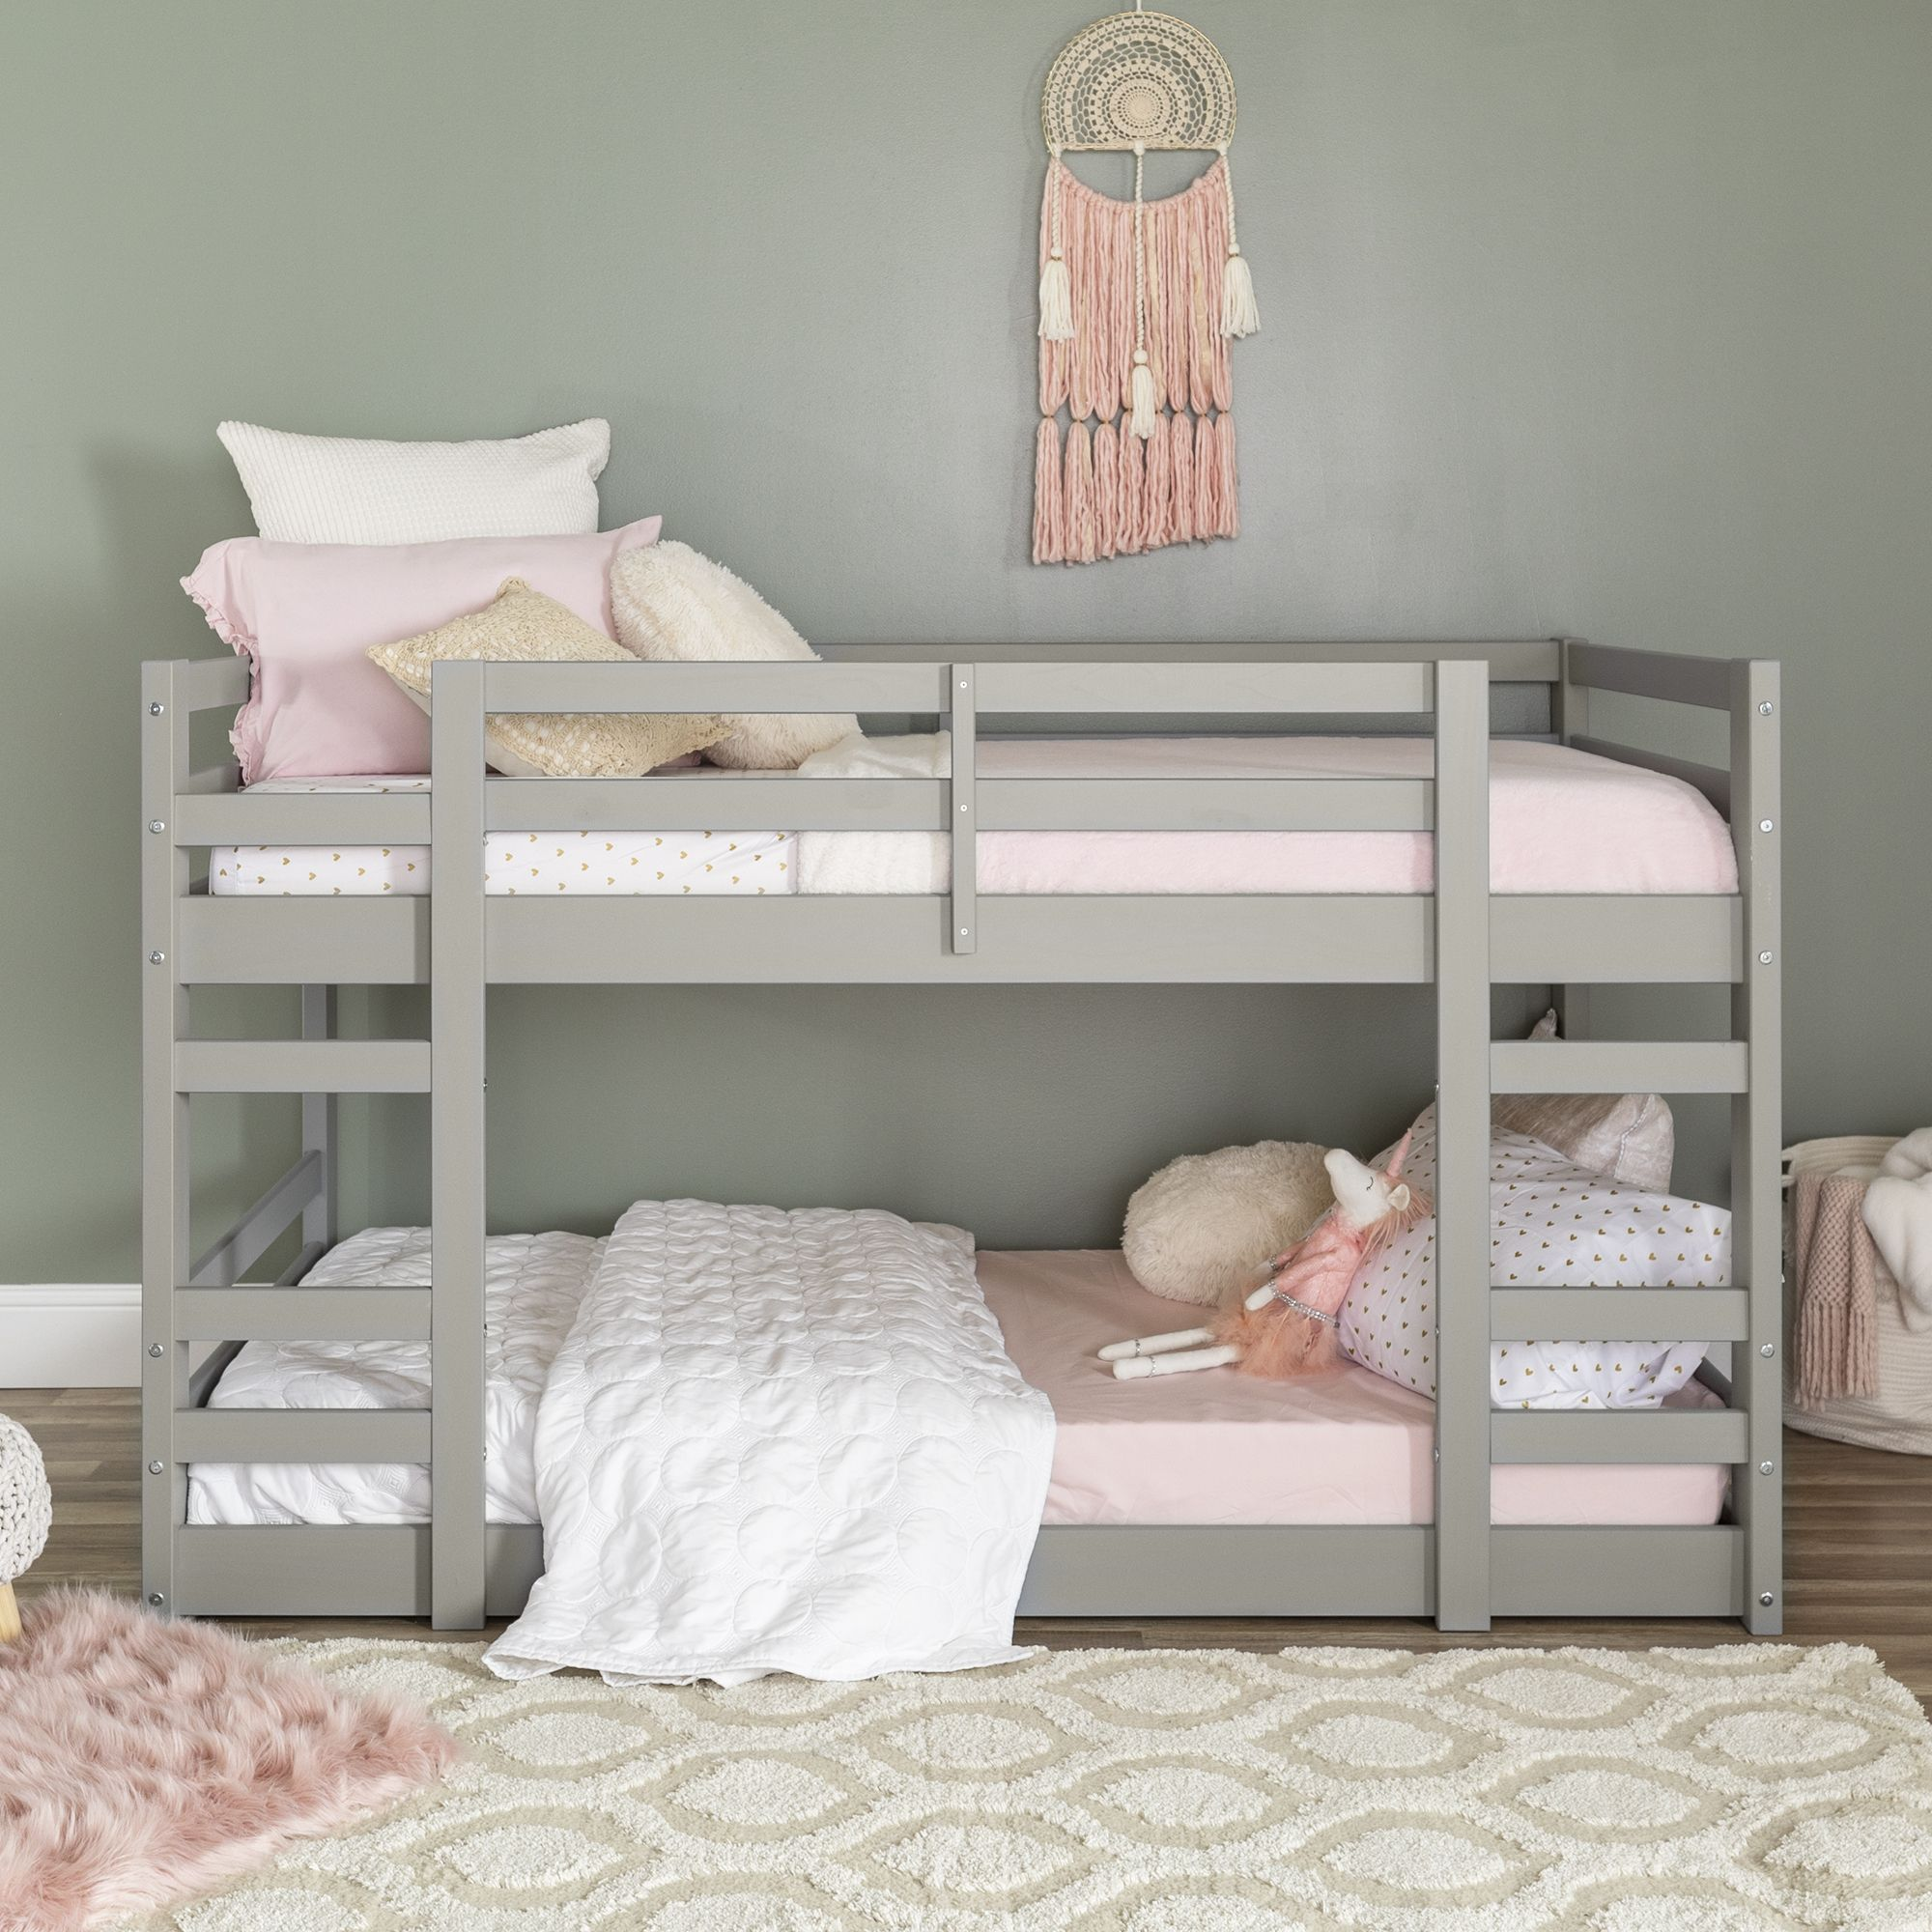 Home In 2020 Bed For Girls Room Bunk Beds For Girls Room Girls